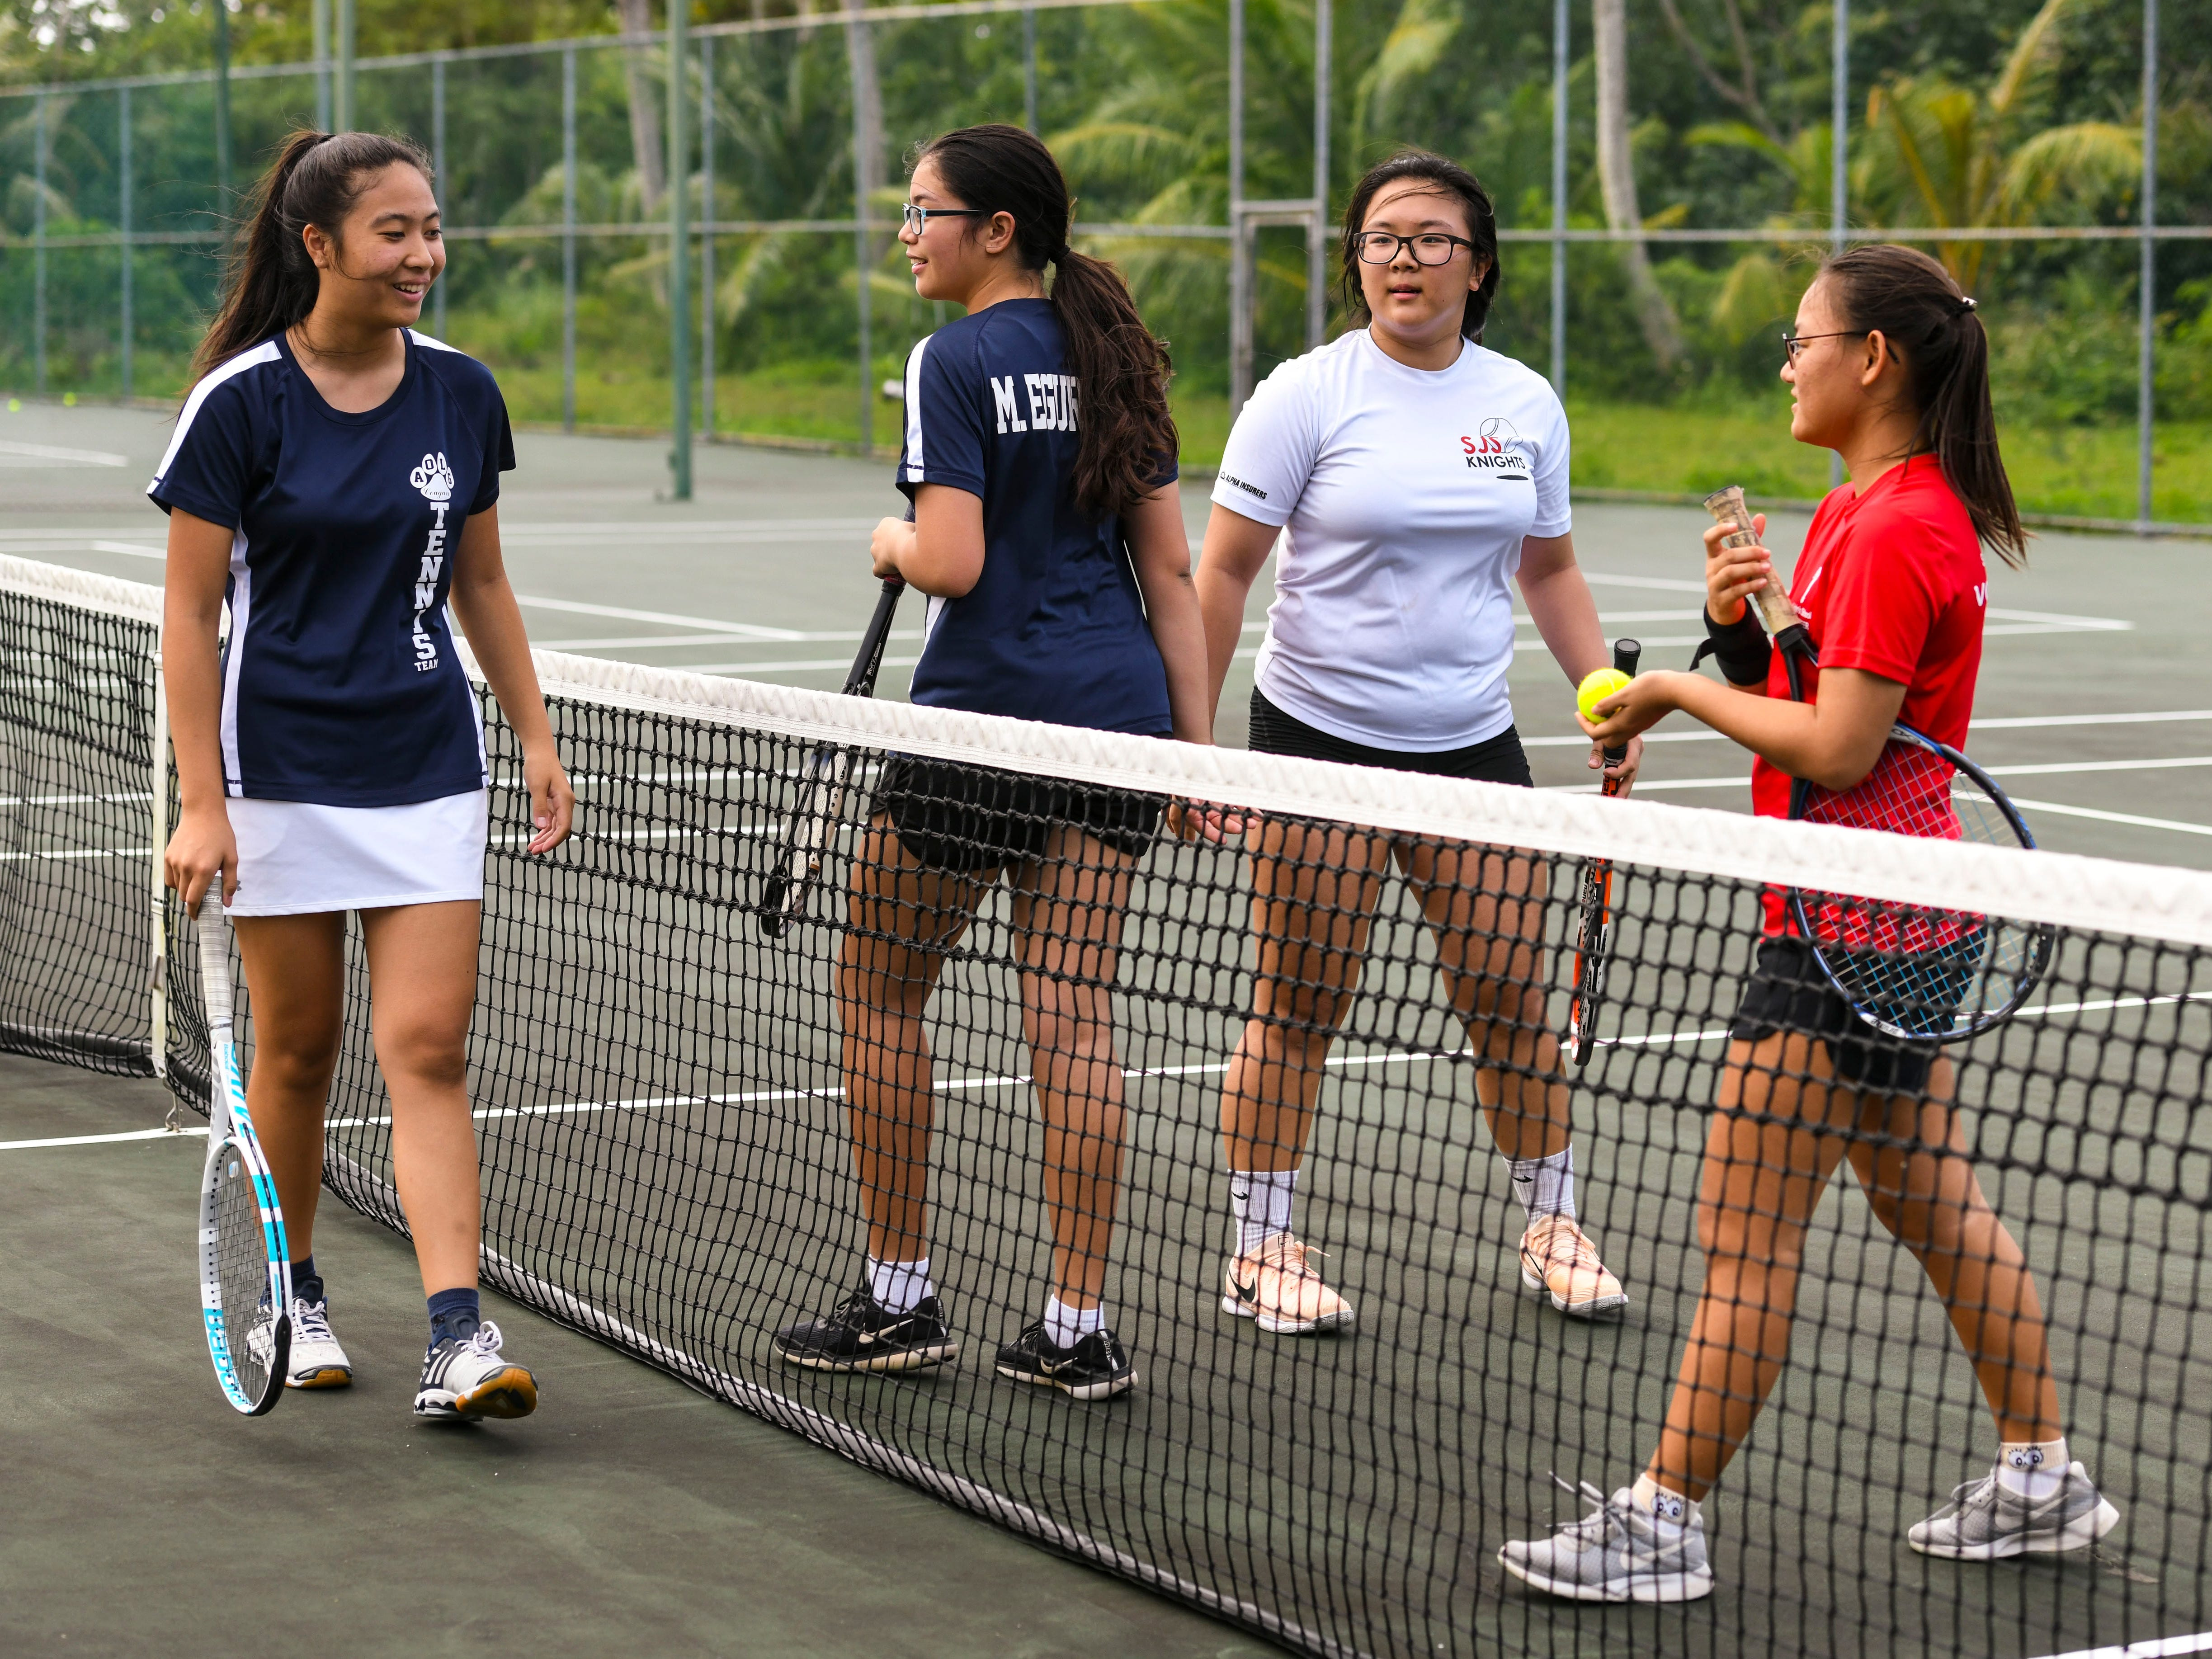 St. John's Knights and Academy of Our Lady Guam Cougars players congratulate one another after completing an Interscholastic Athletic Association of Guam tennis doubles match at the Rick Ninete Tennis Center in Hagåtna on Thursday, Jan. 31, 2019.